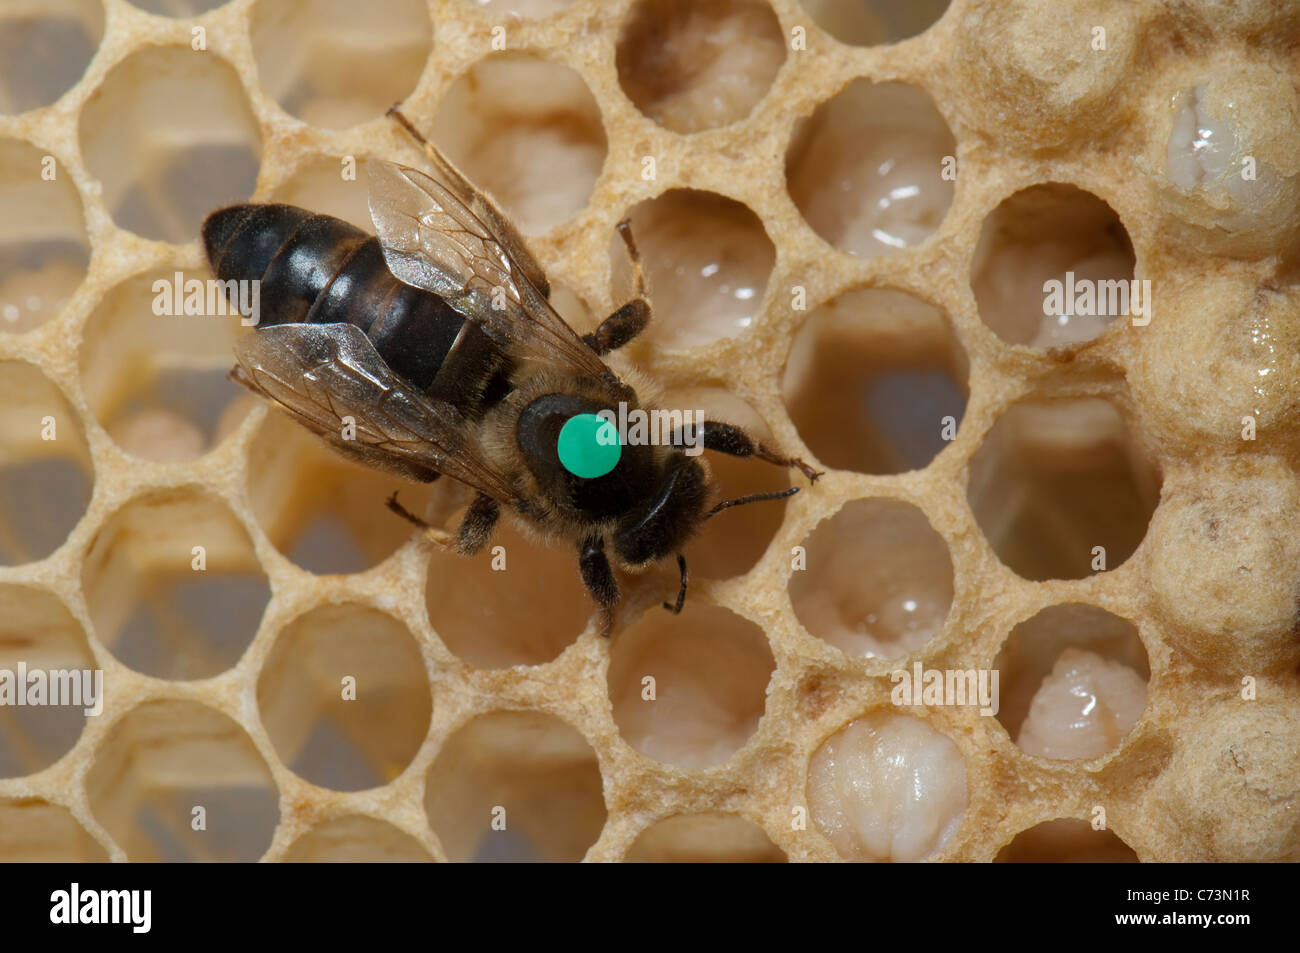 European Honey Bee, Western Honey Bee (Apis mellifera, Apis mellifica). Marked queen on honeycomb. - Stock Image